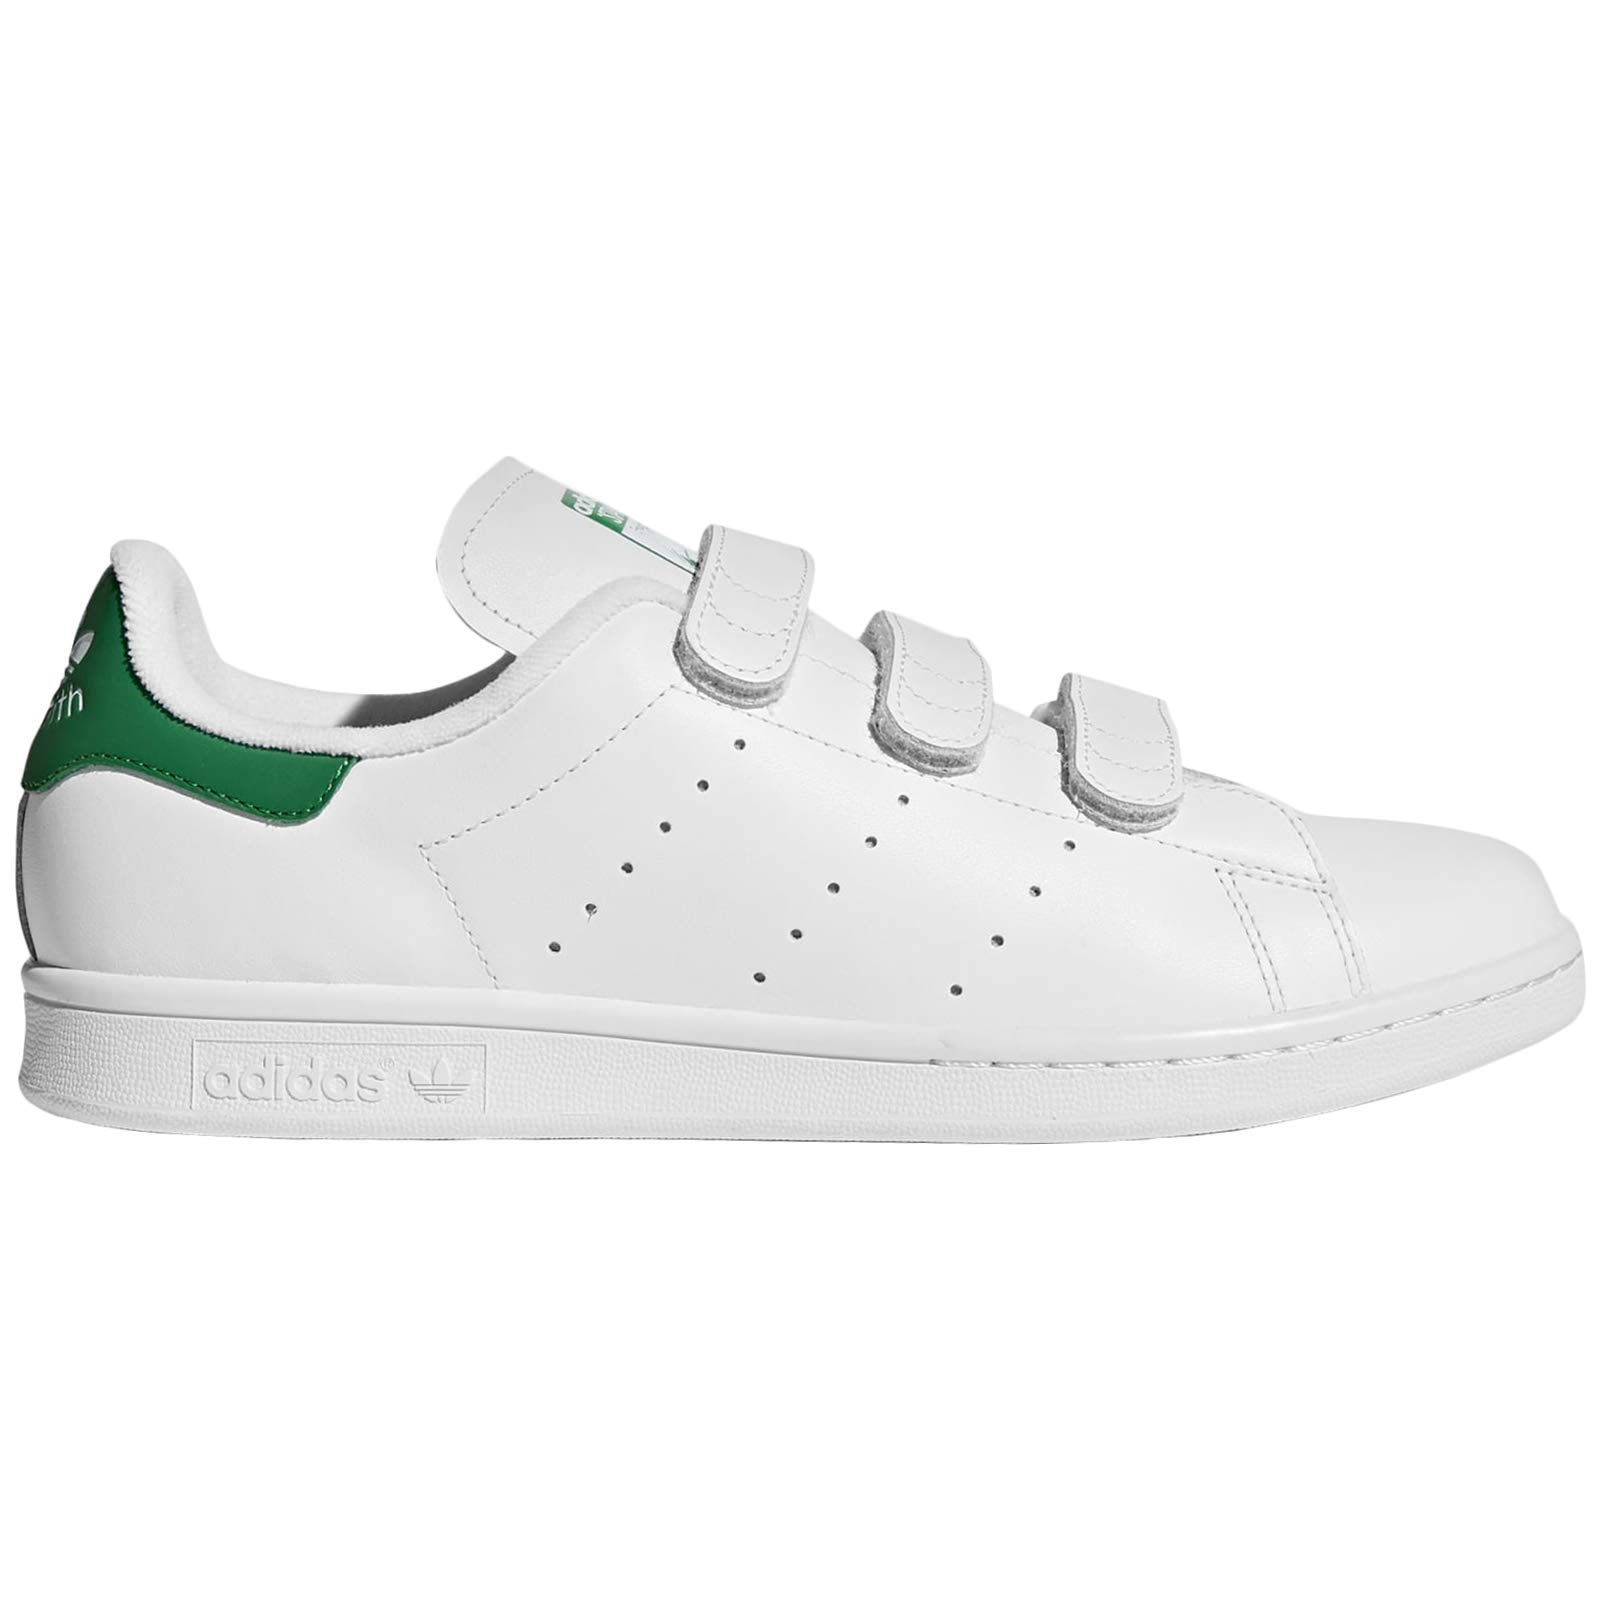 low priced 89a10 e9283 adidas Mens Stan Smith CF Leather Footwear White Green Trainers 11.5 US